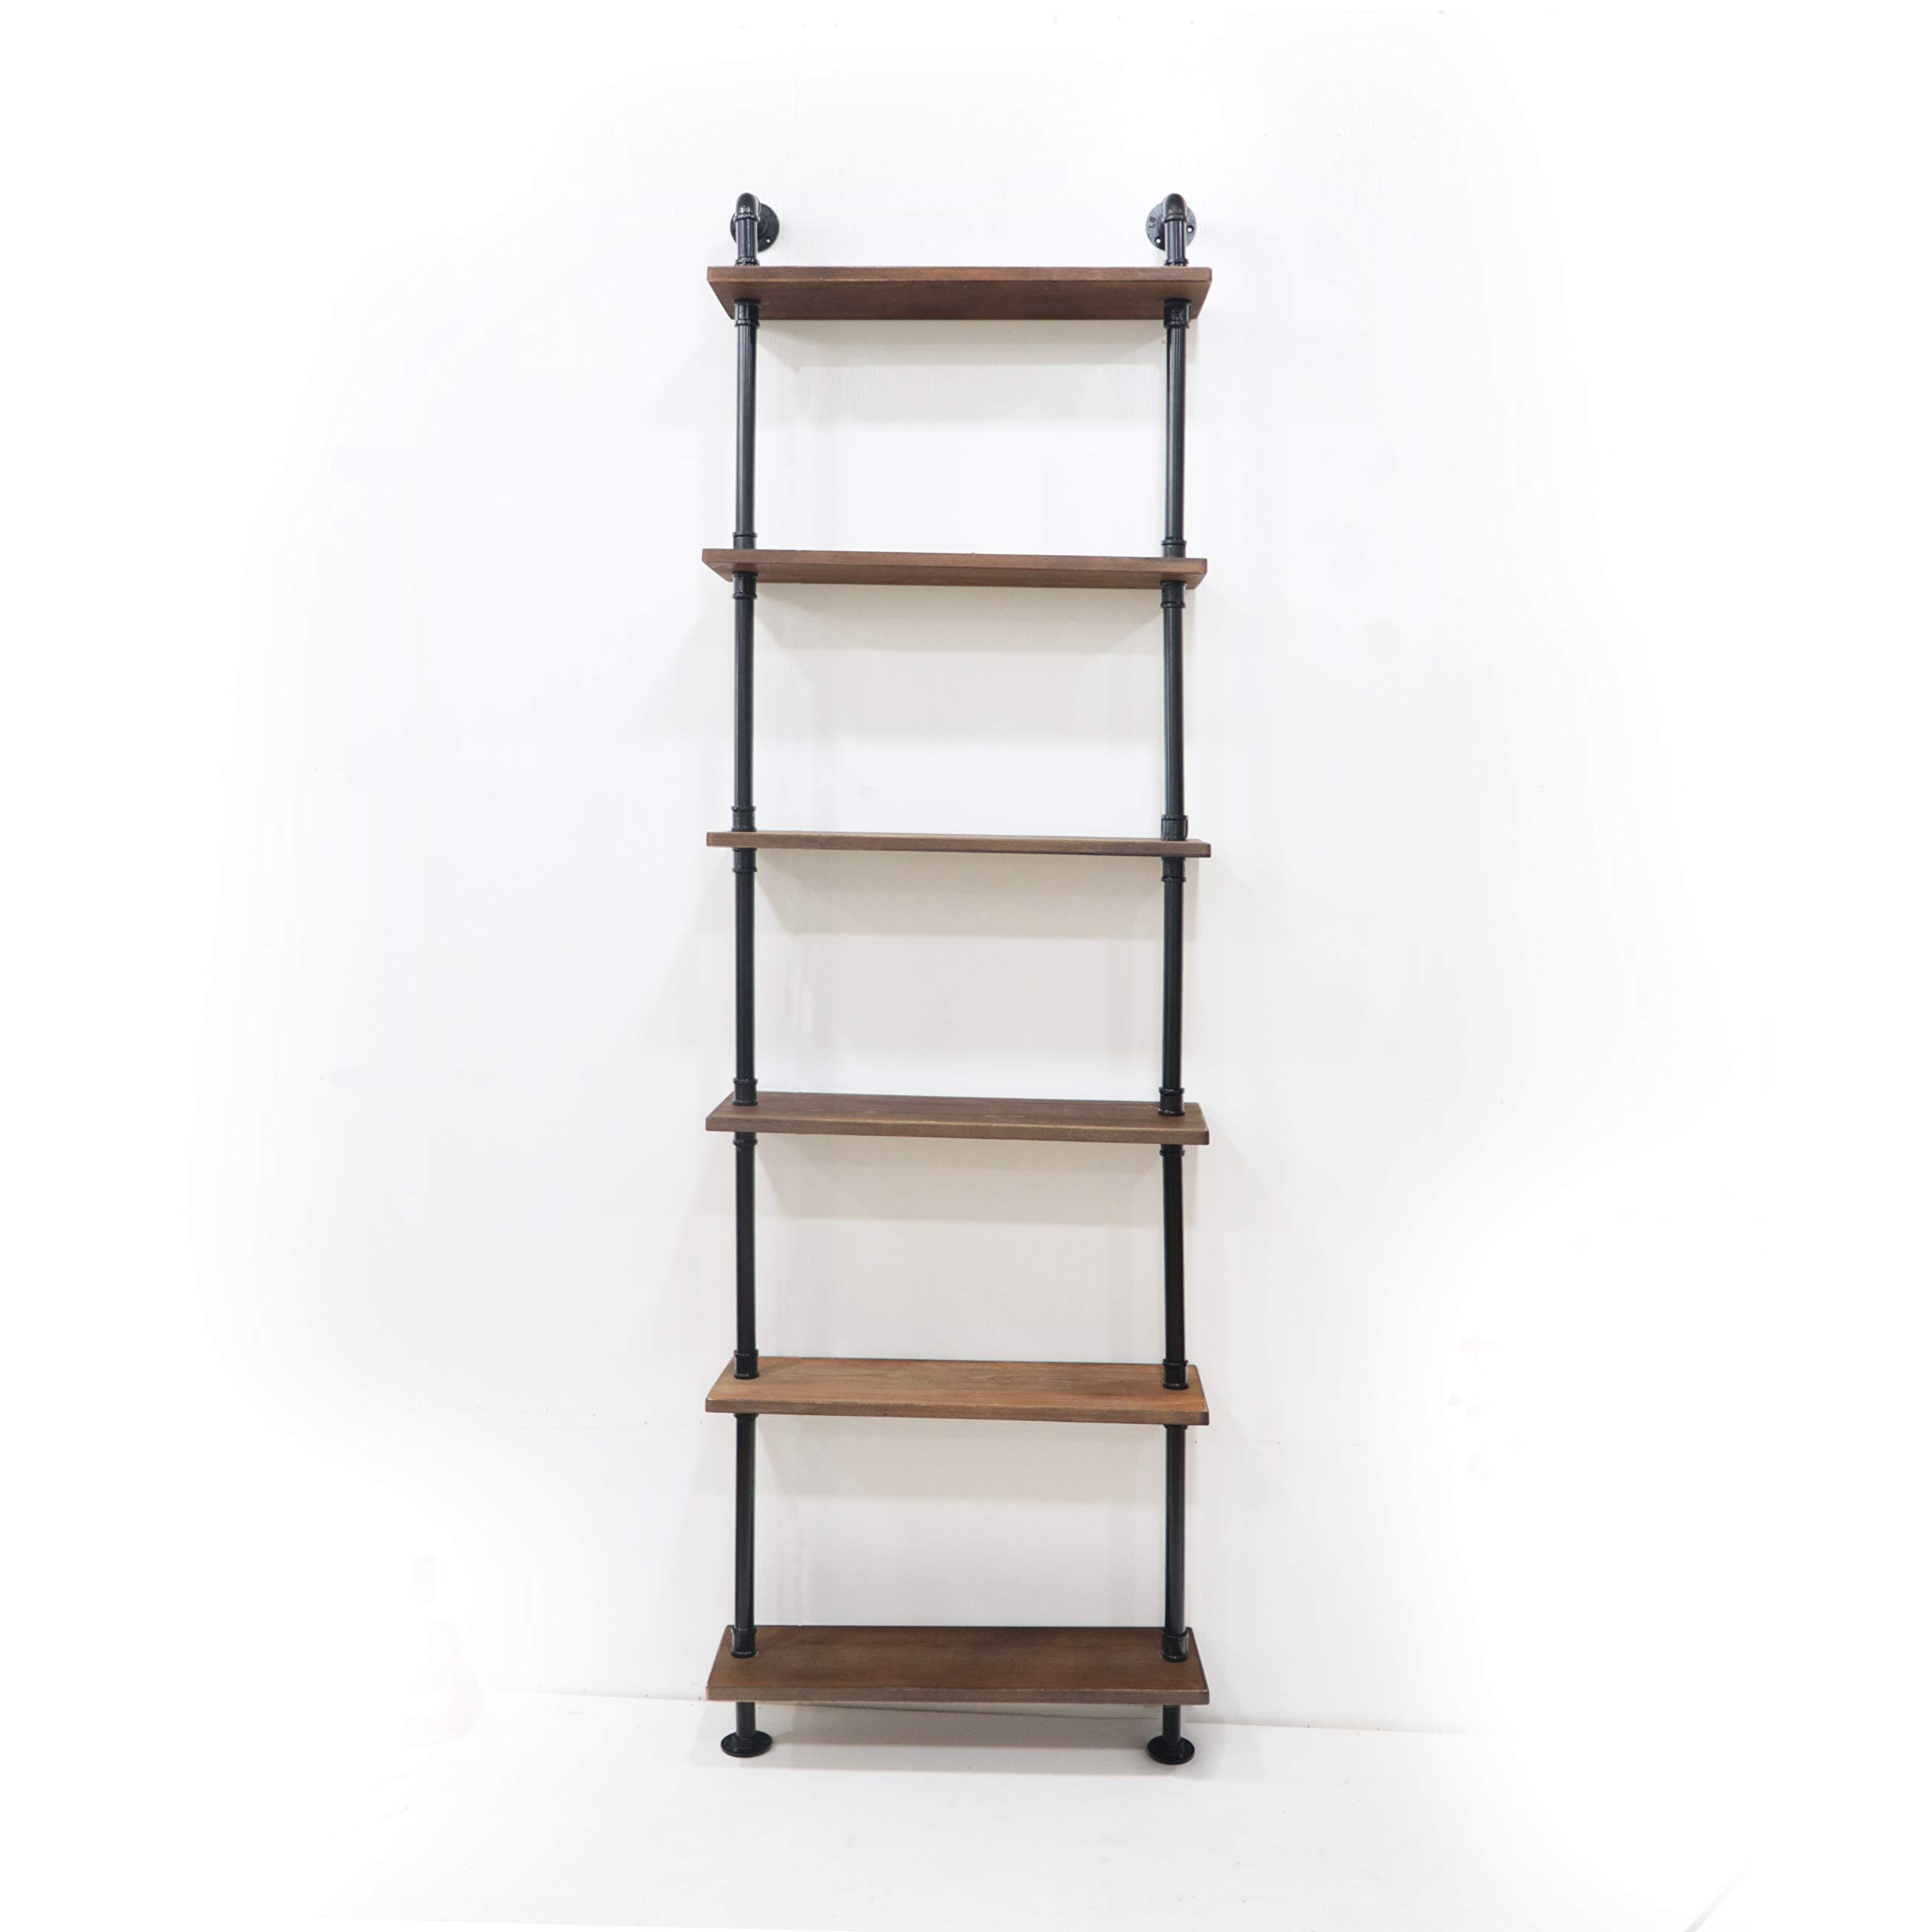 KINMADE Industrial Pipe Shelf Wall Shelf Rustic Wood with Black Iron Pipe 6 Tier